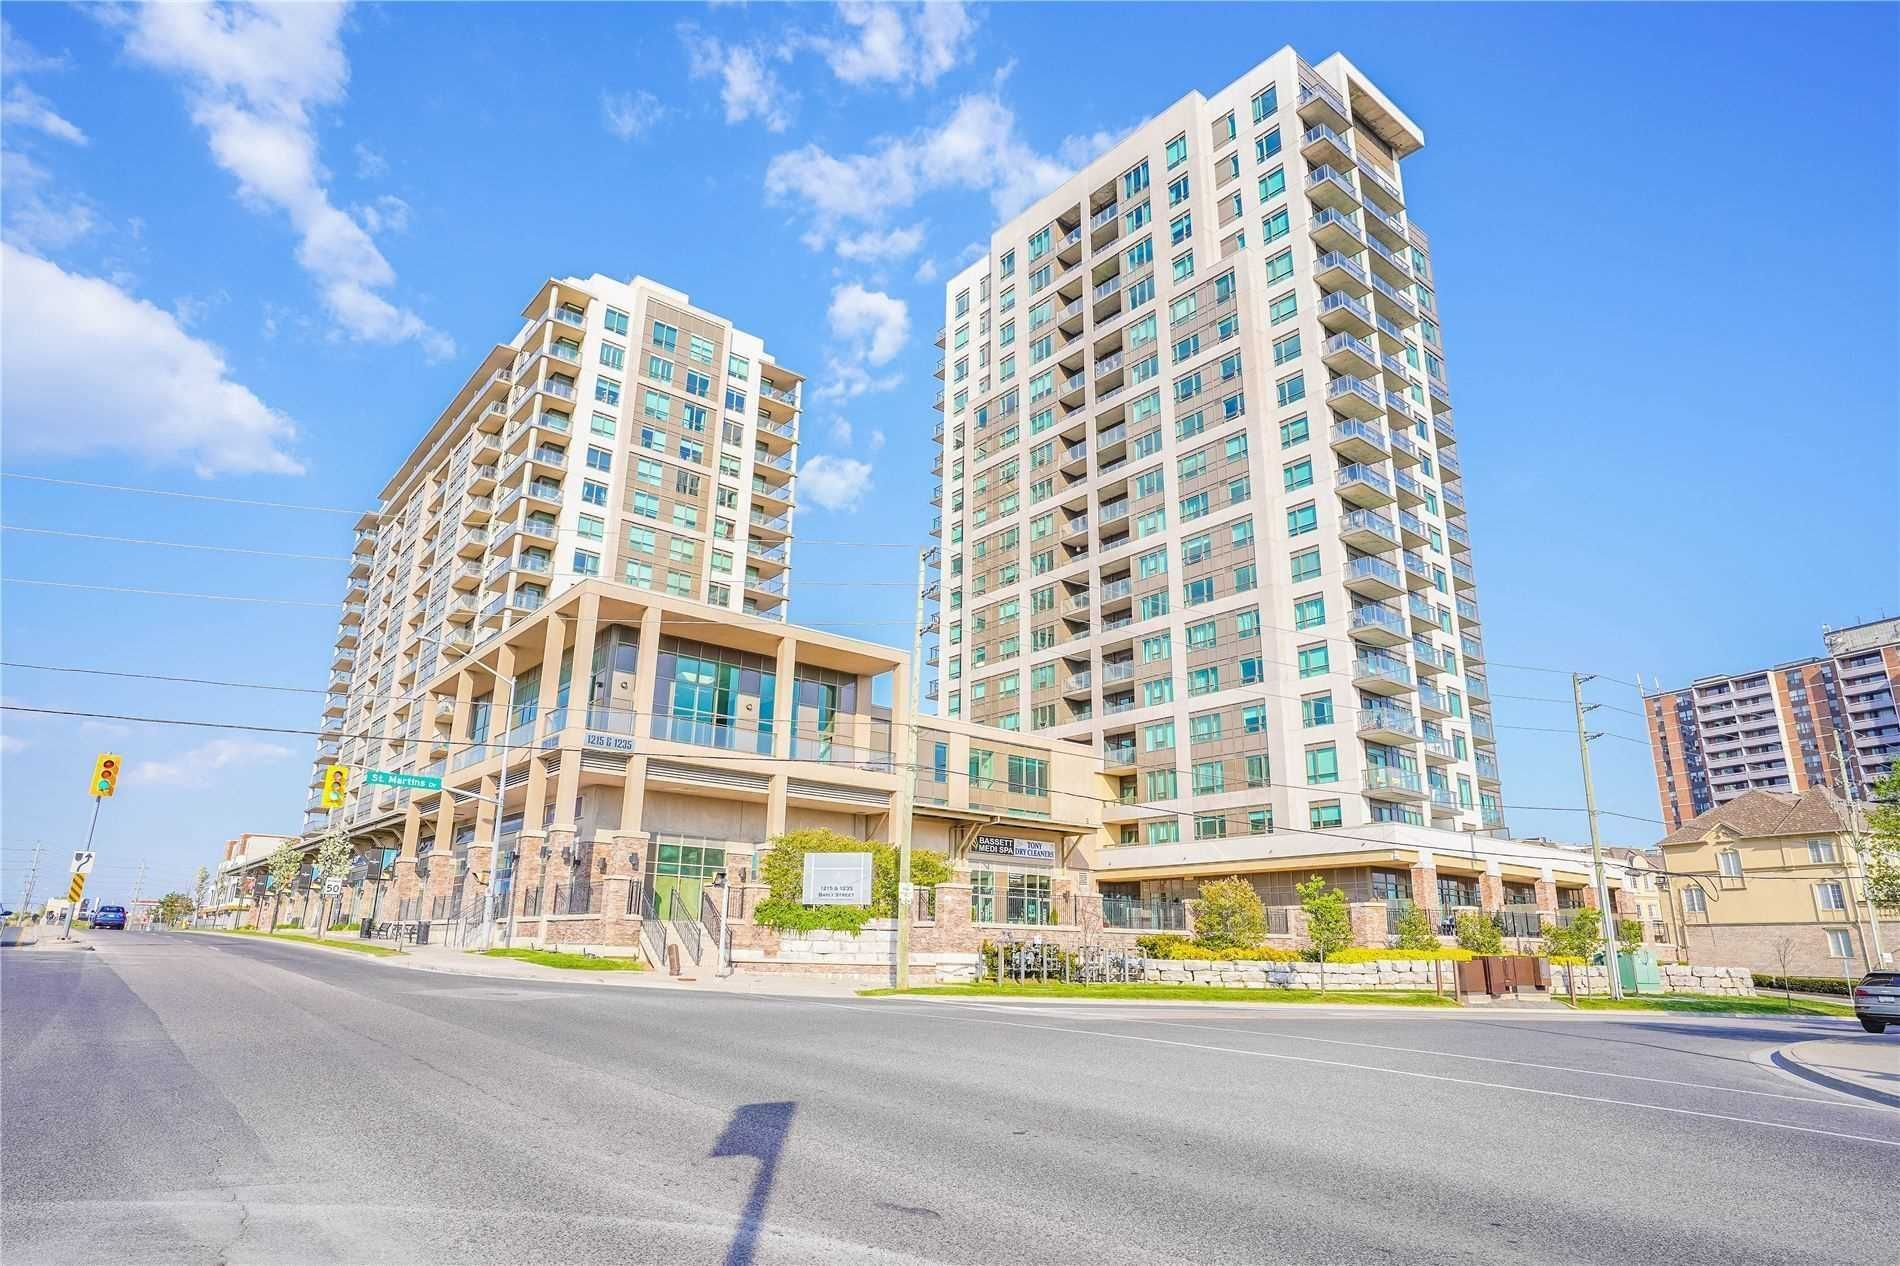 1215 Bayly St, unit 402 for sale in Toronto - image #1